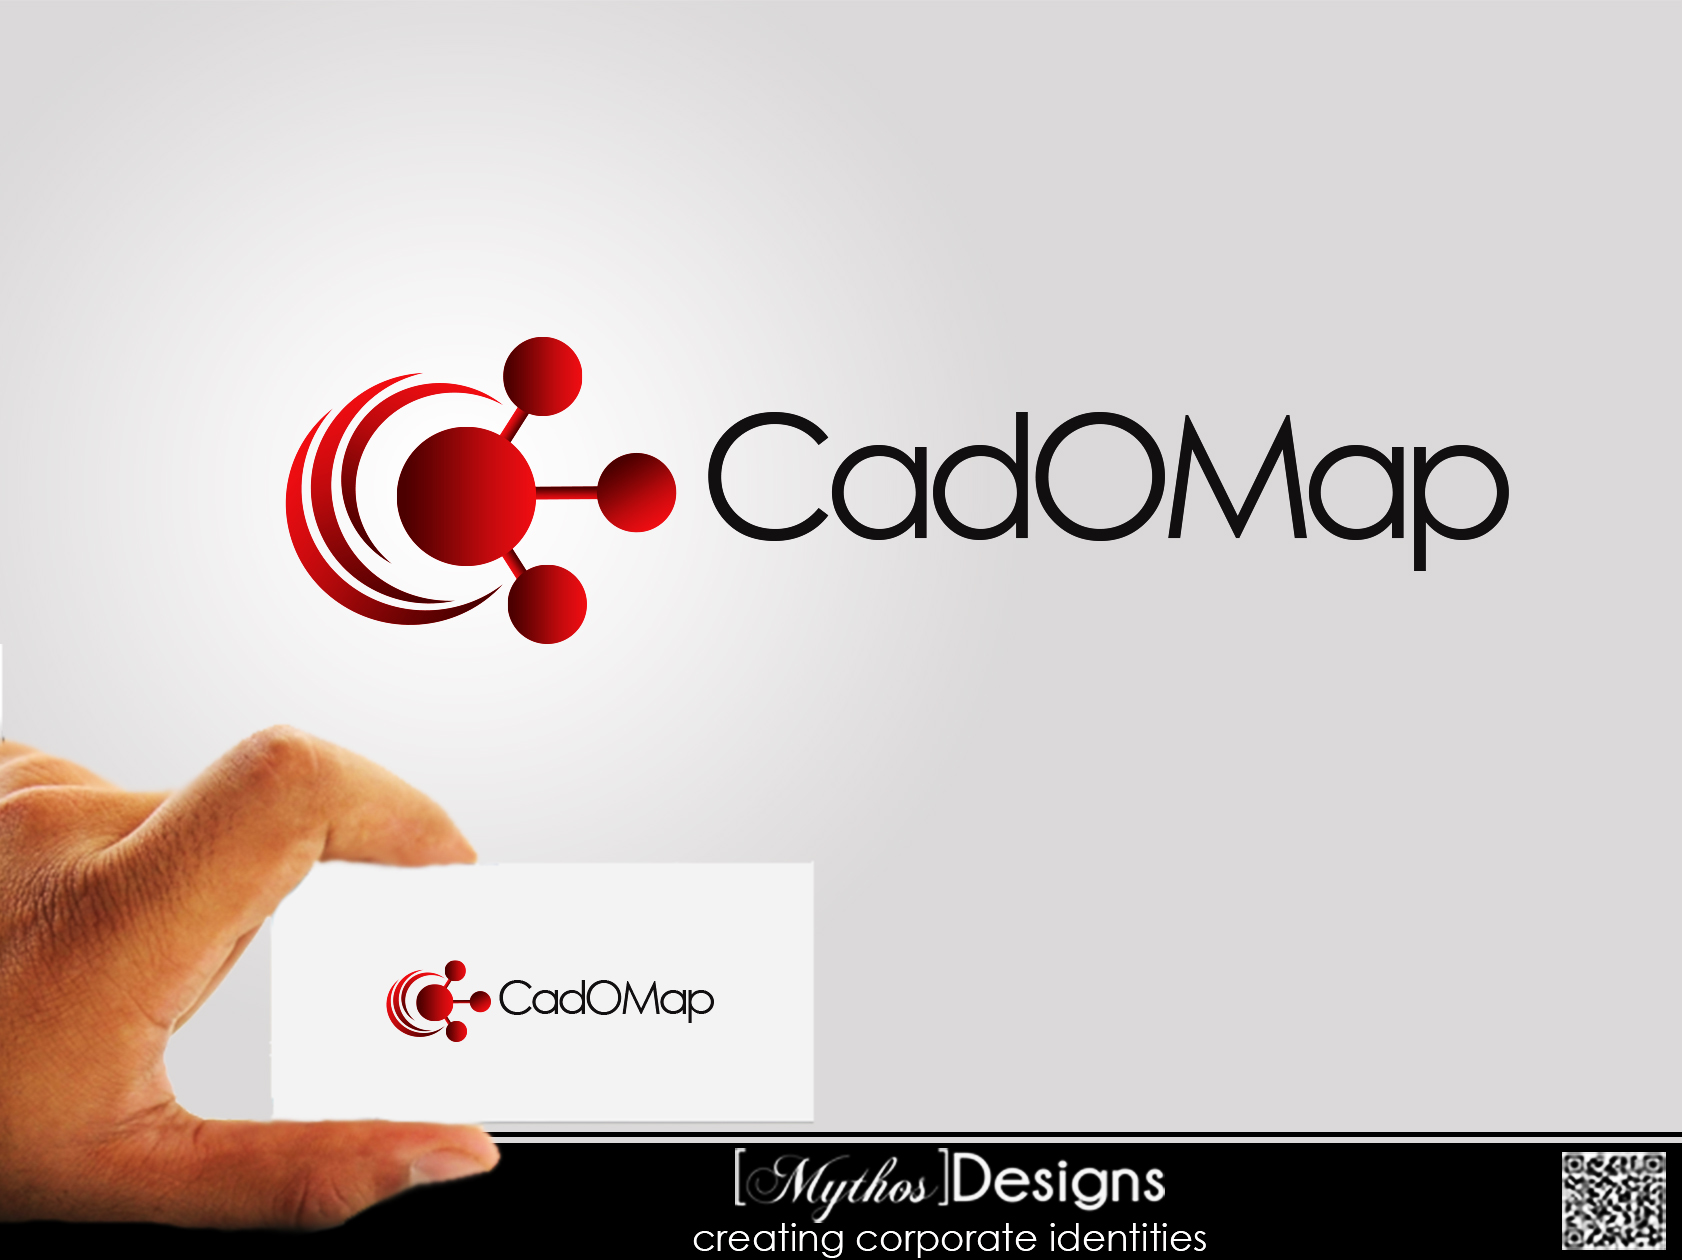 Logo Design by Mythos Designs - Entry No. 30 in the Logo Design Contest Captivating Logo Design for CadOMap software product.